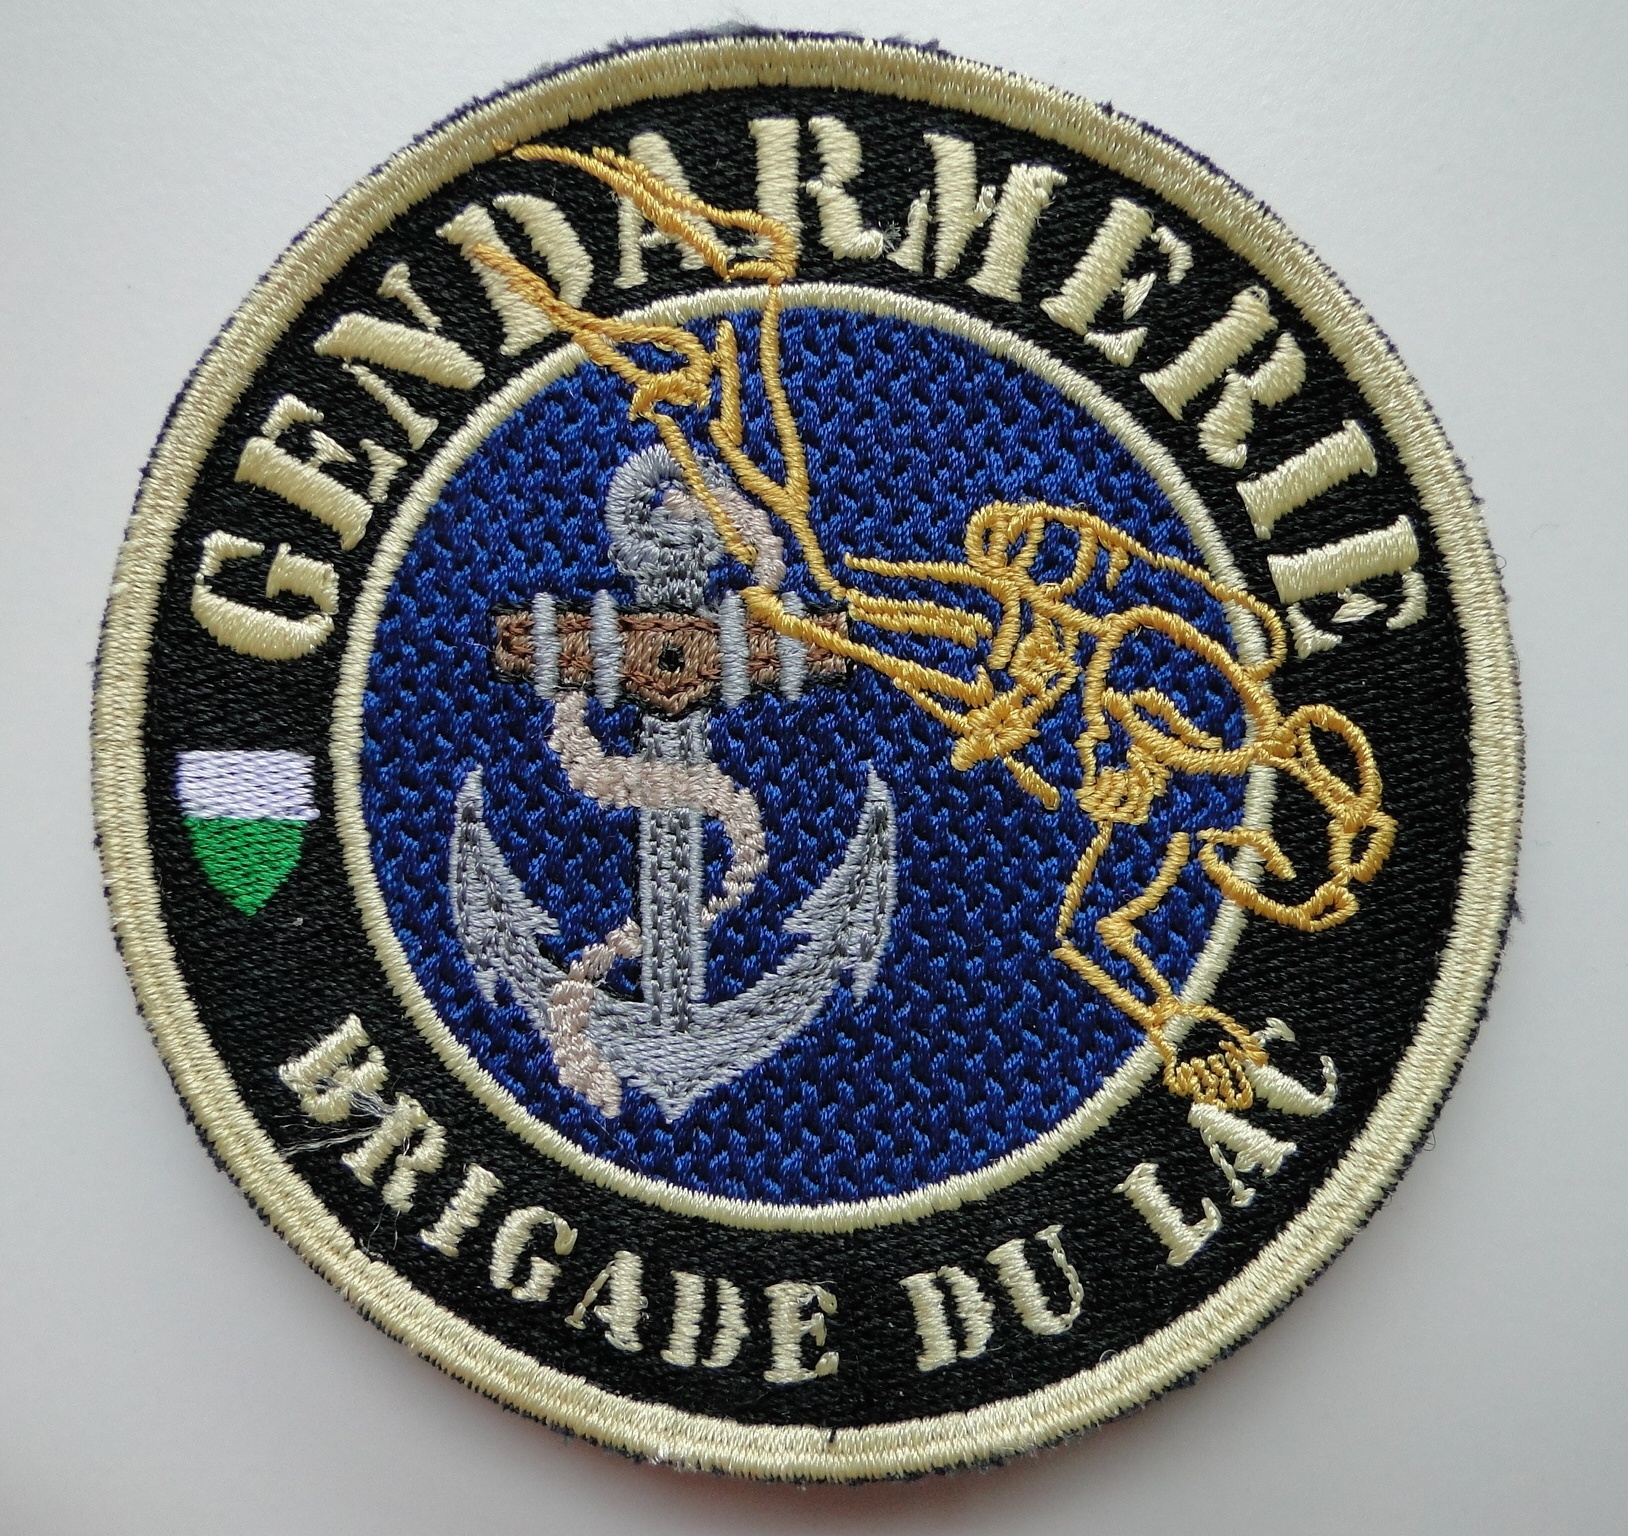 Brigade du lac - 3ème version